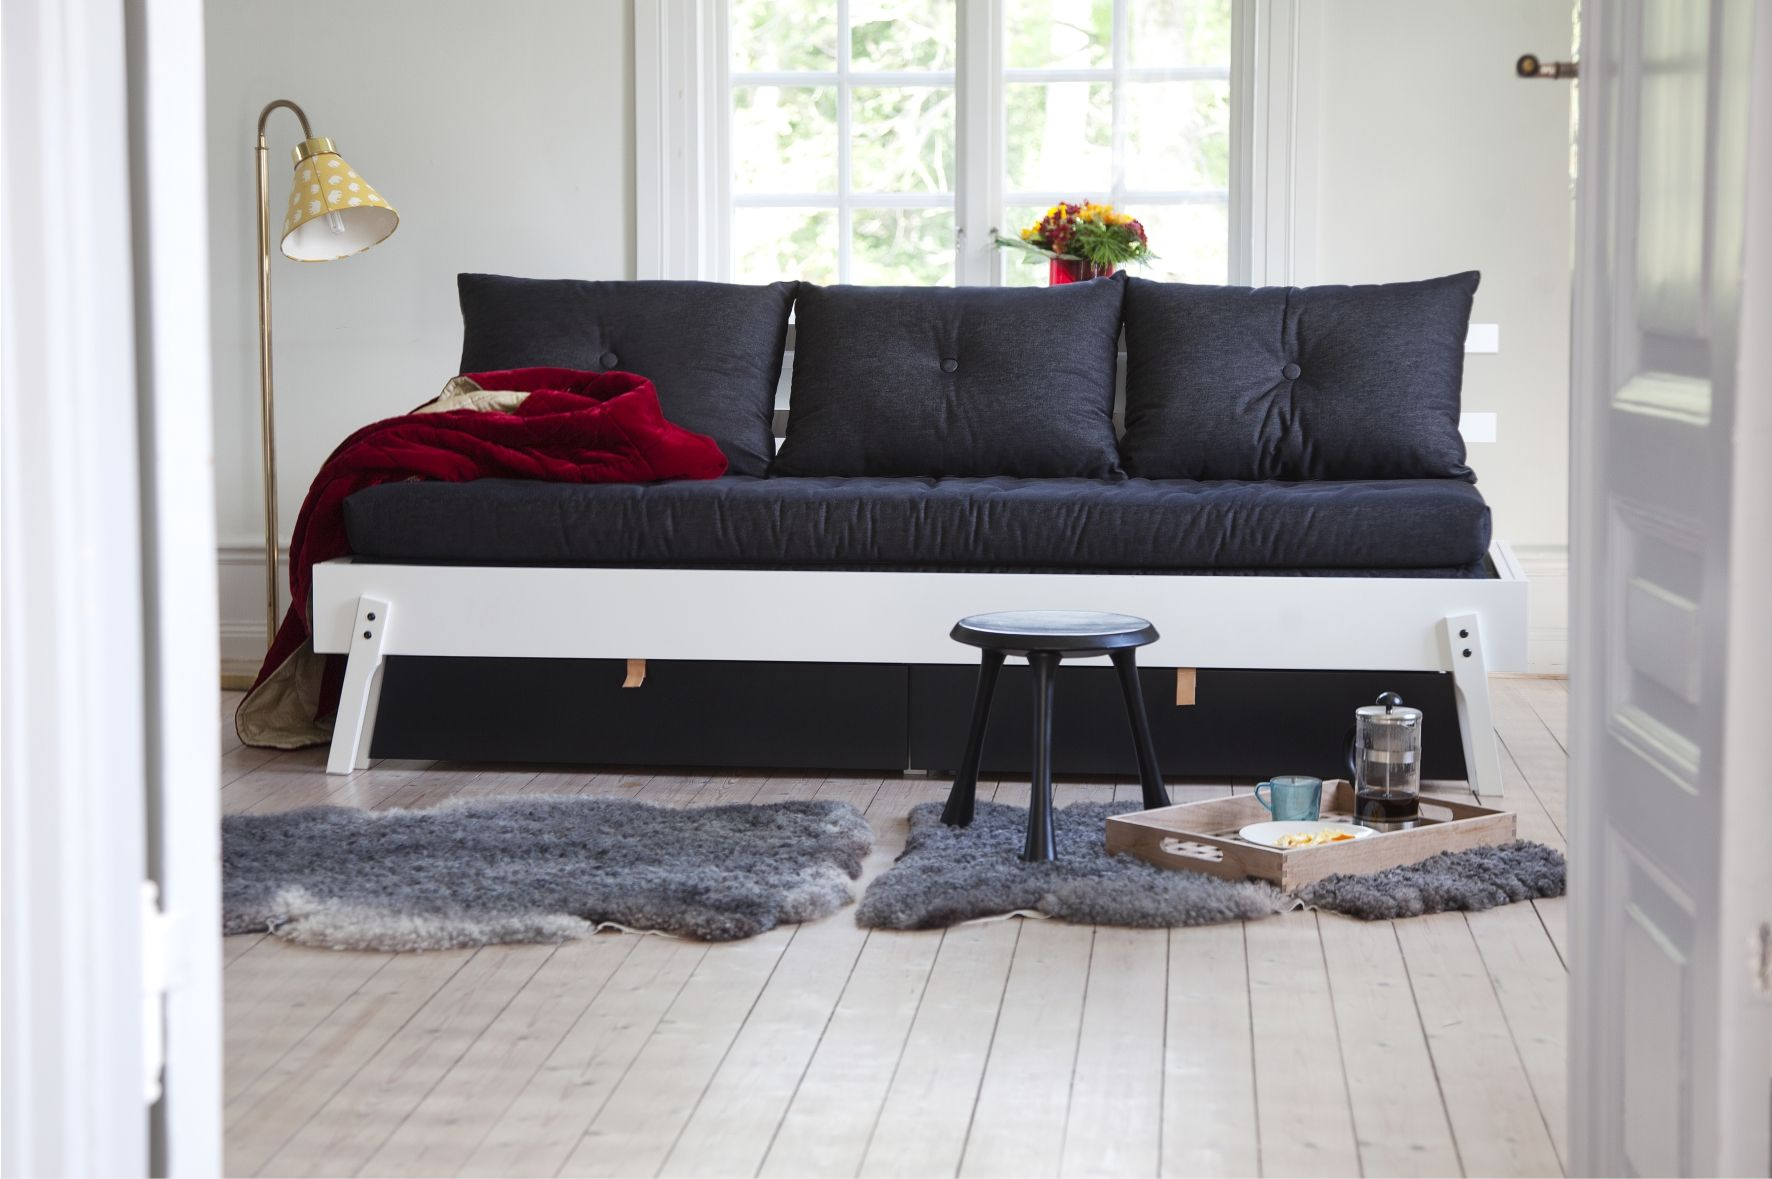 day bed ikea ps 2012 | sovesofa | pinterest | ikea ps, inredning